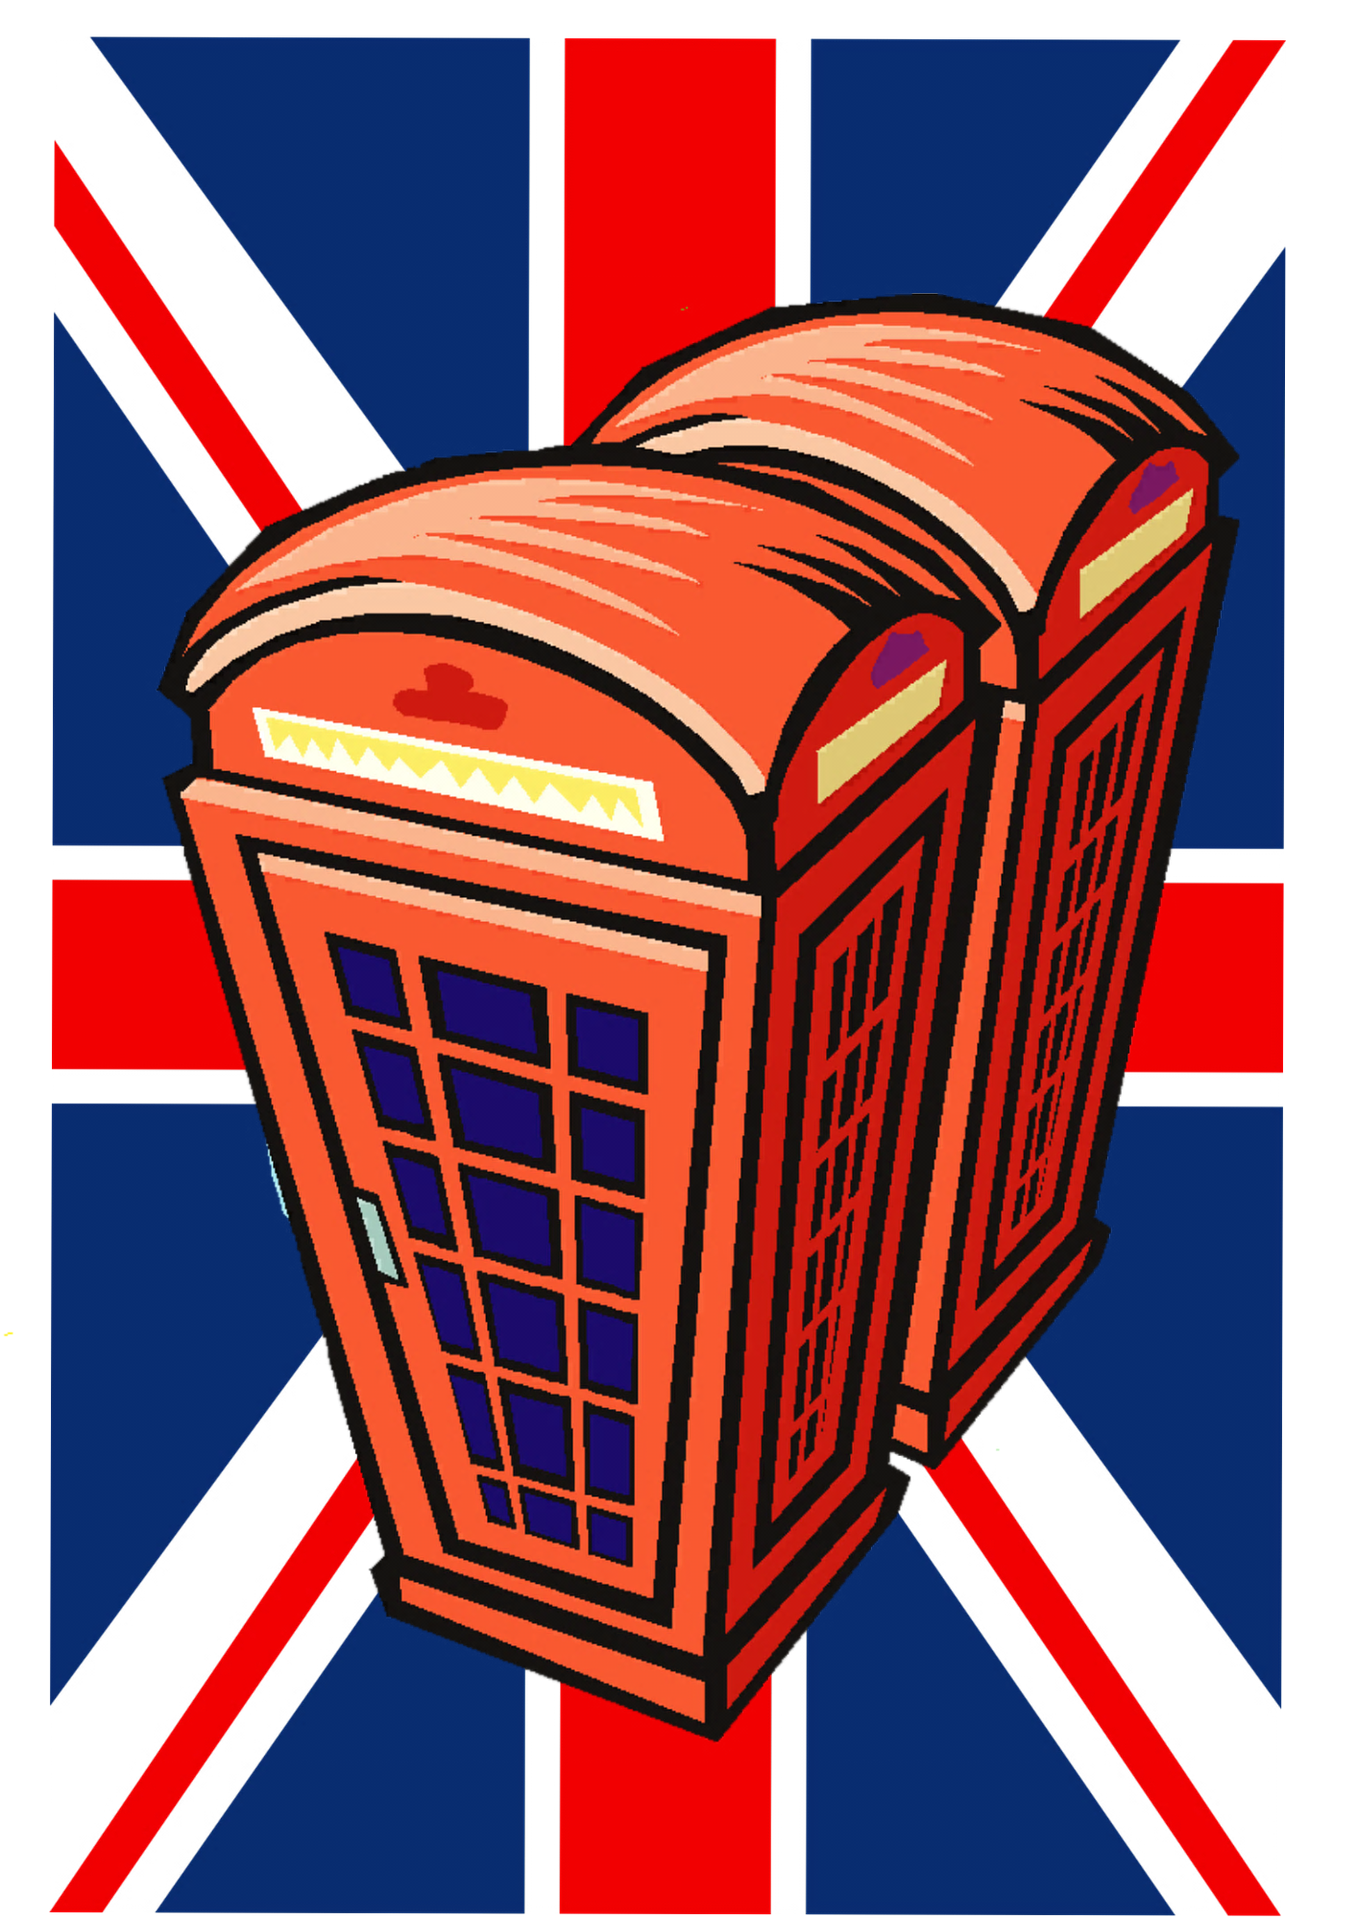 British flag and phone booths